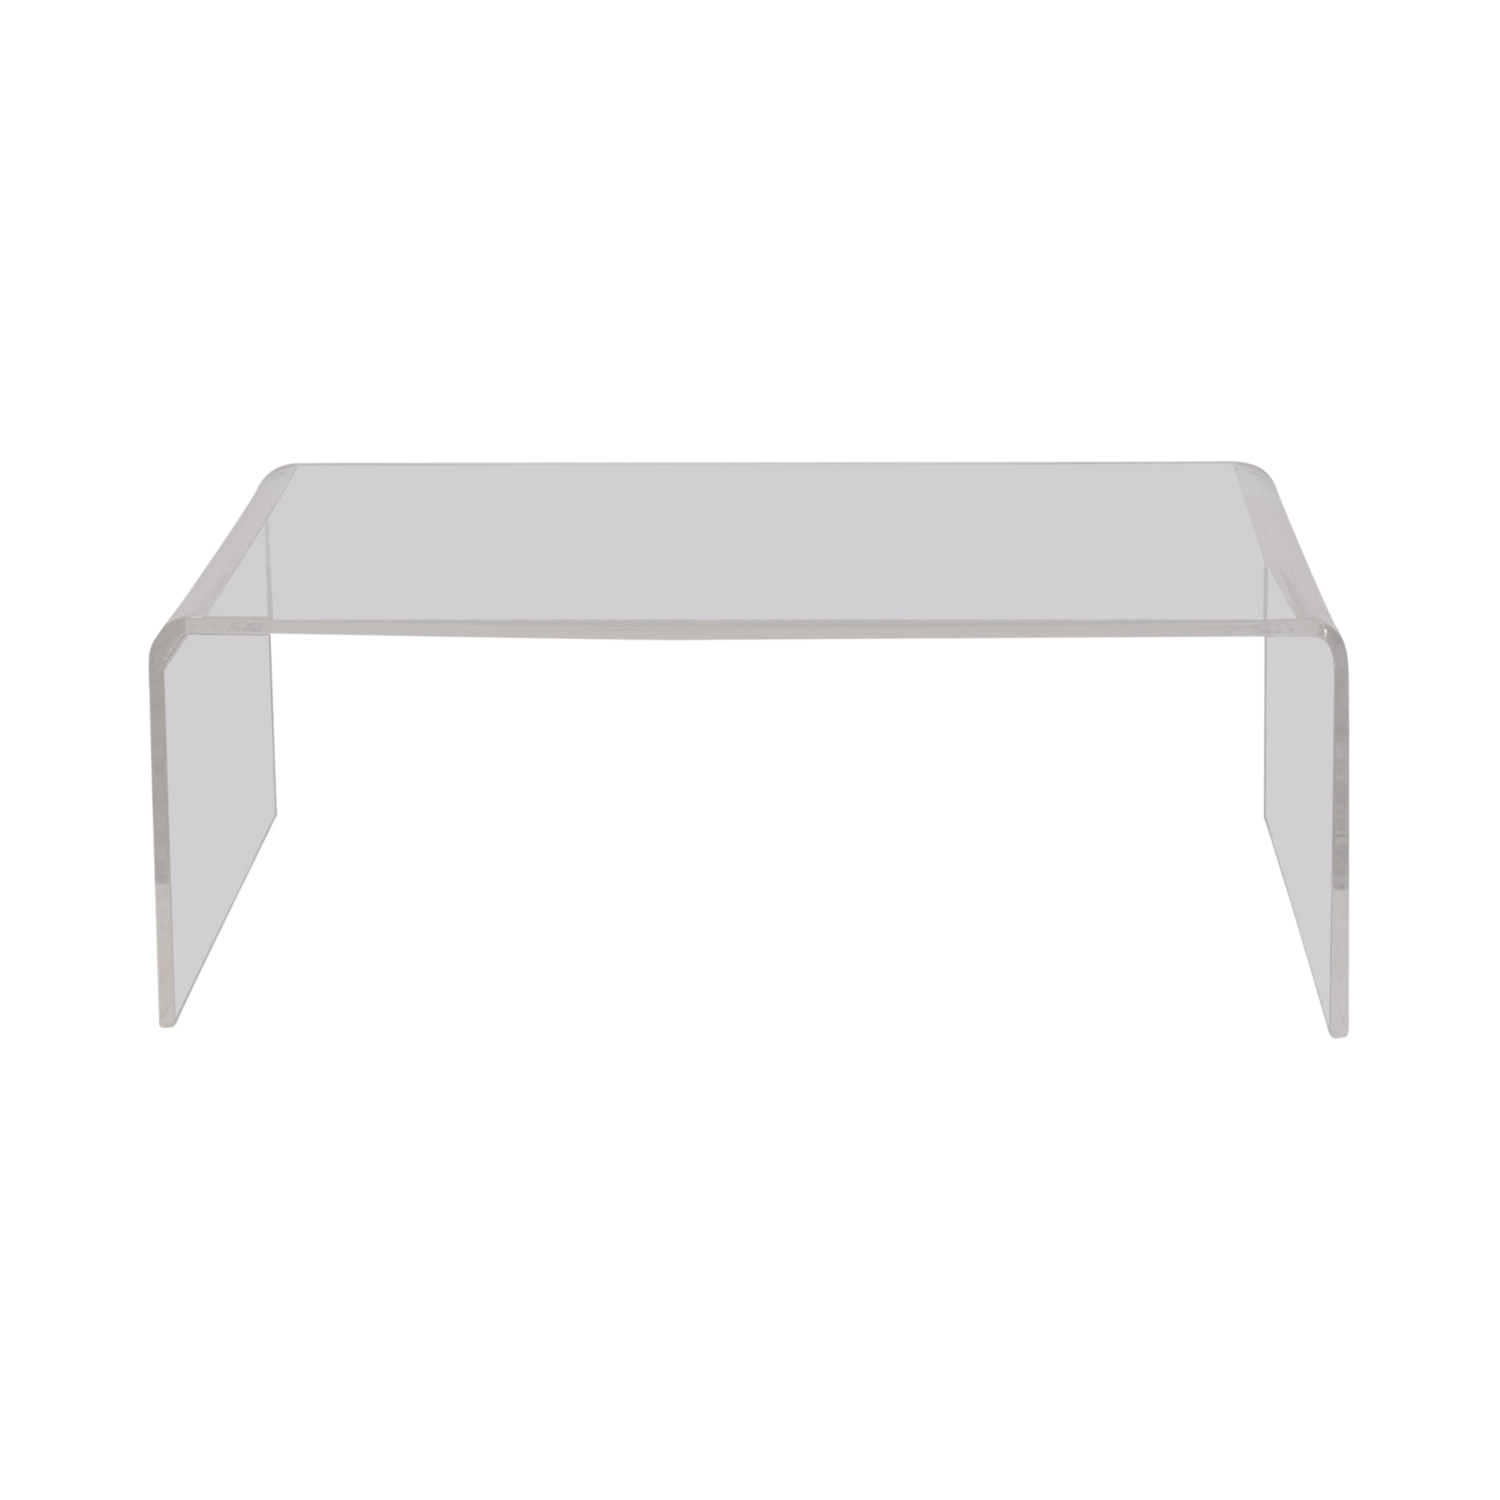 Most Popular Peekaboo Acrylic Tall Coffee Tables Inside Peekaboo Acrylic Coffee Table Clear Coffee Table, Coffee And – Tina (View 18 of 20)